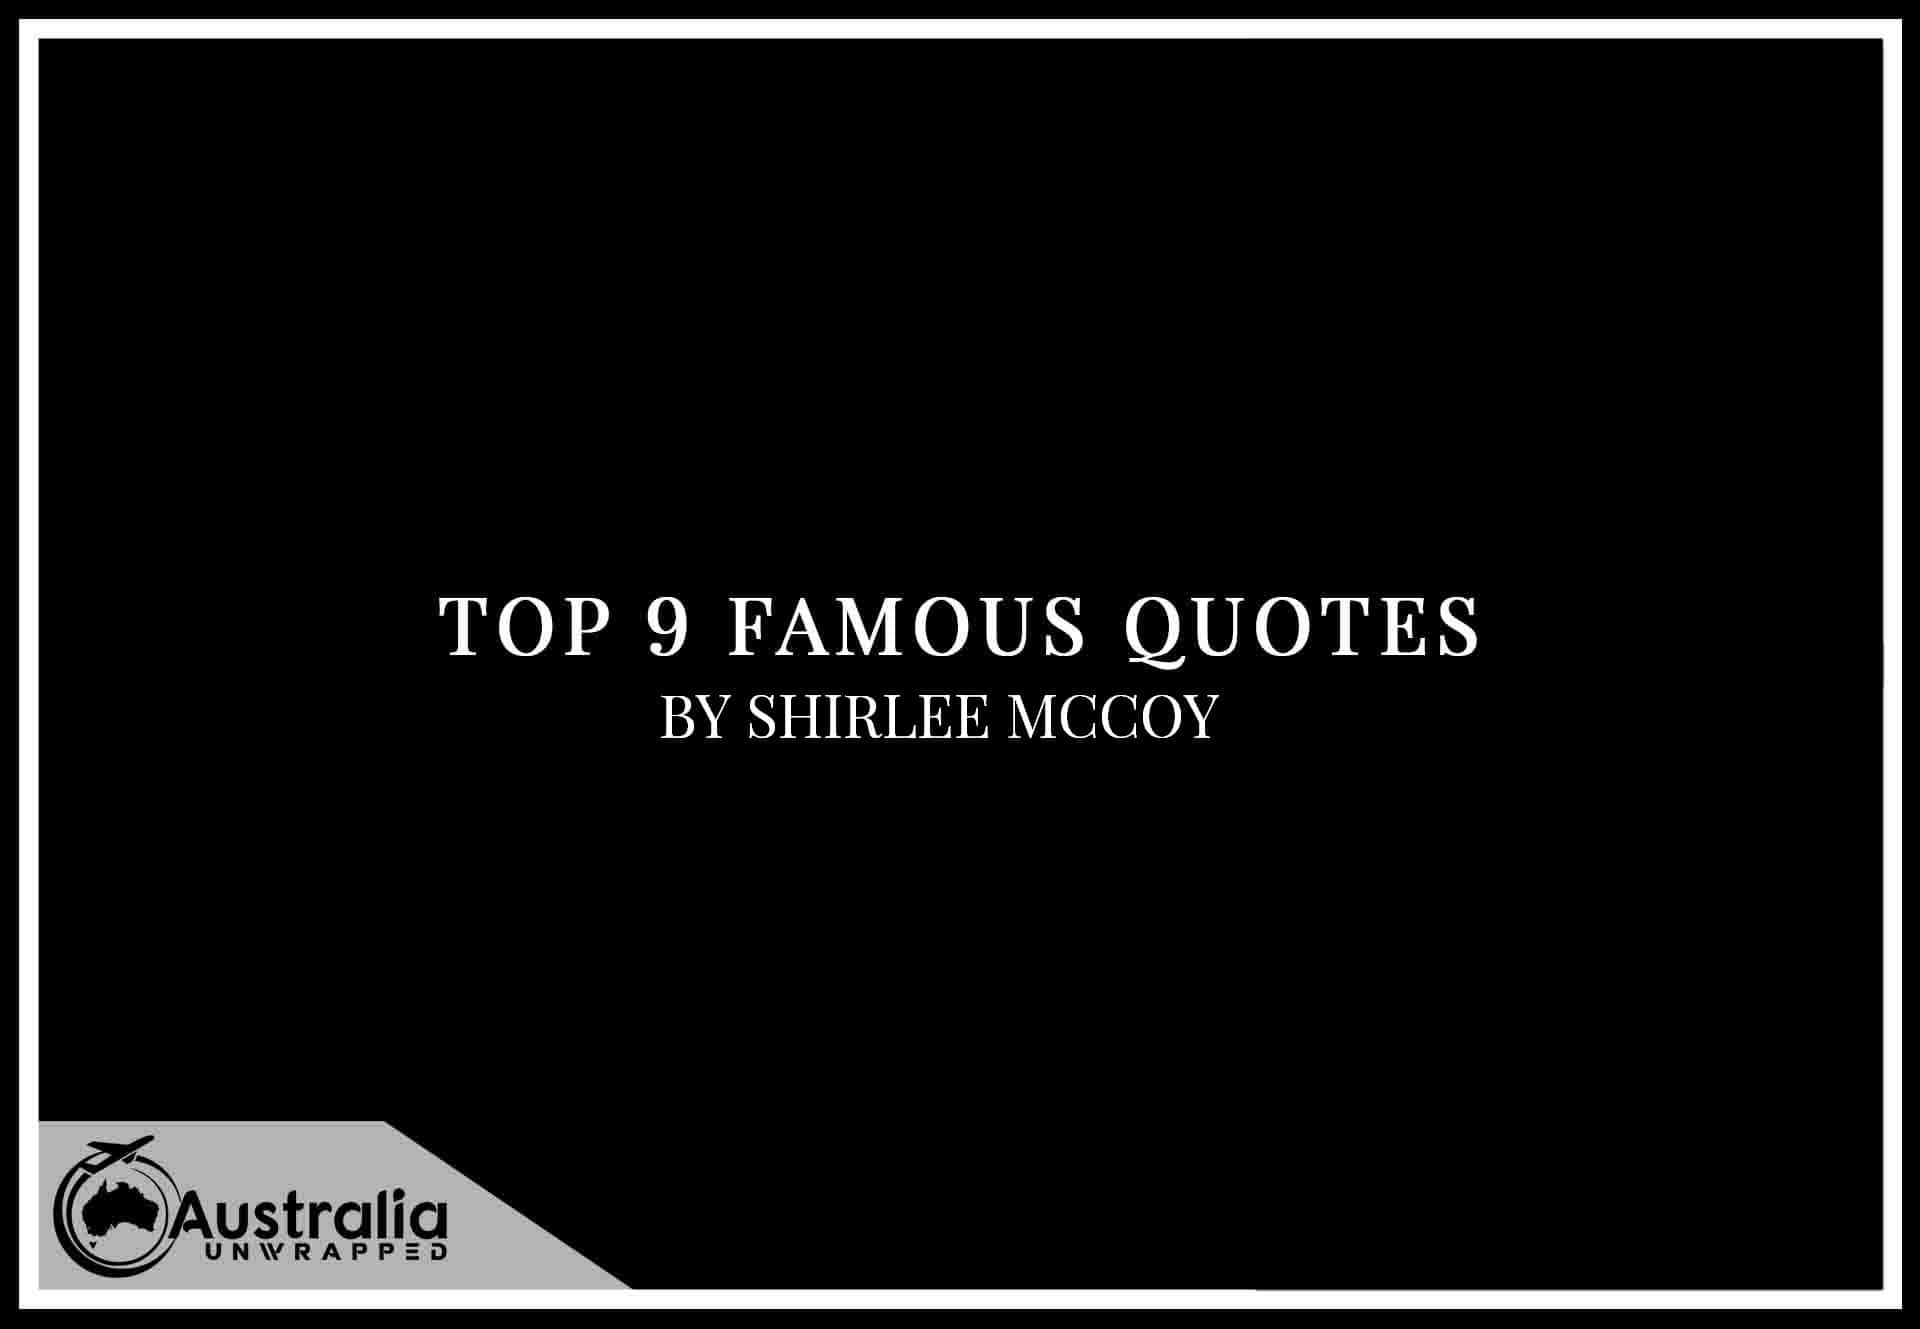 Top 9 Famous Quotes by Author Shirlee McCoy